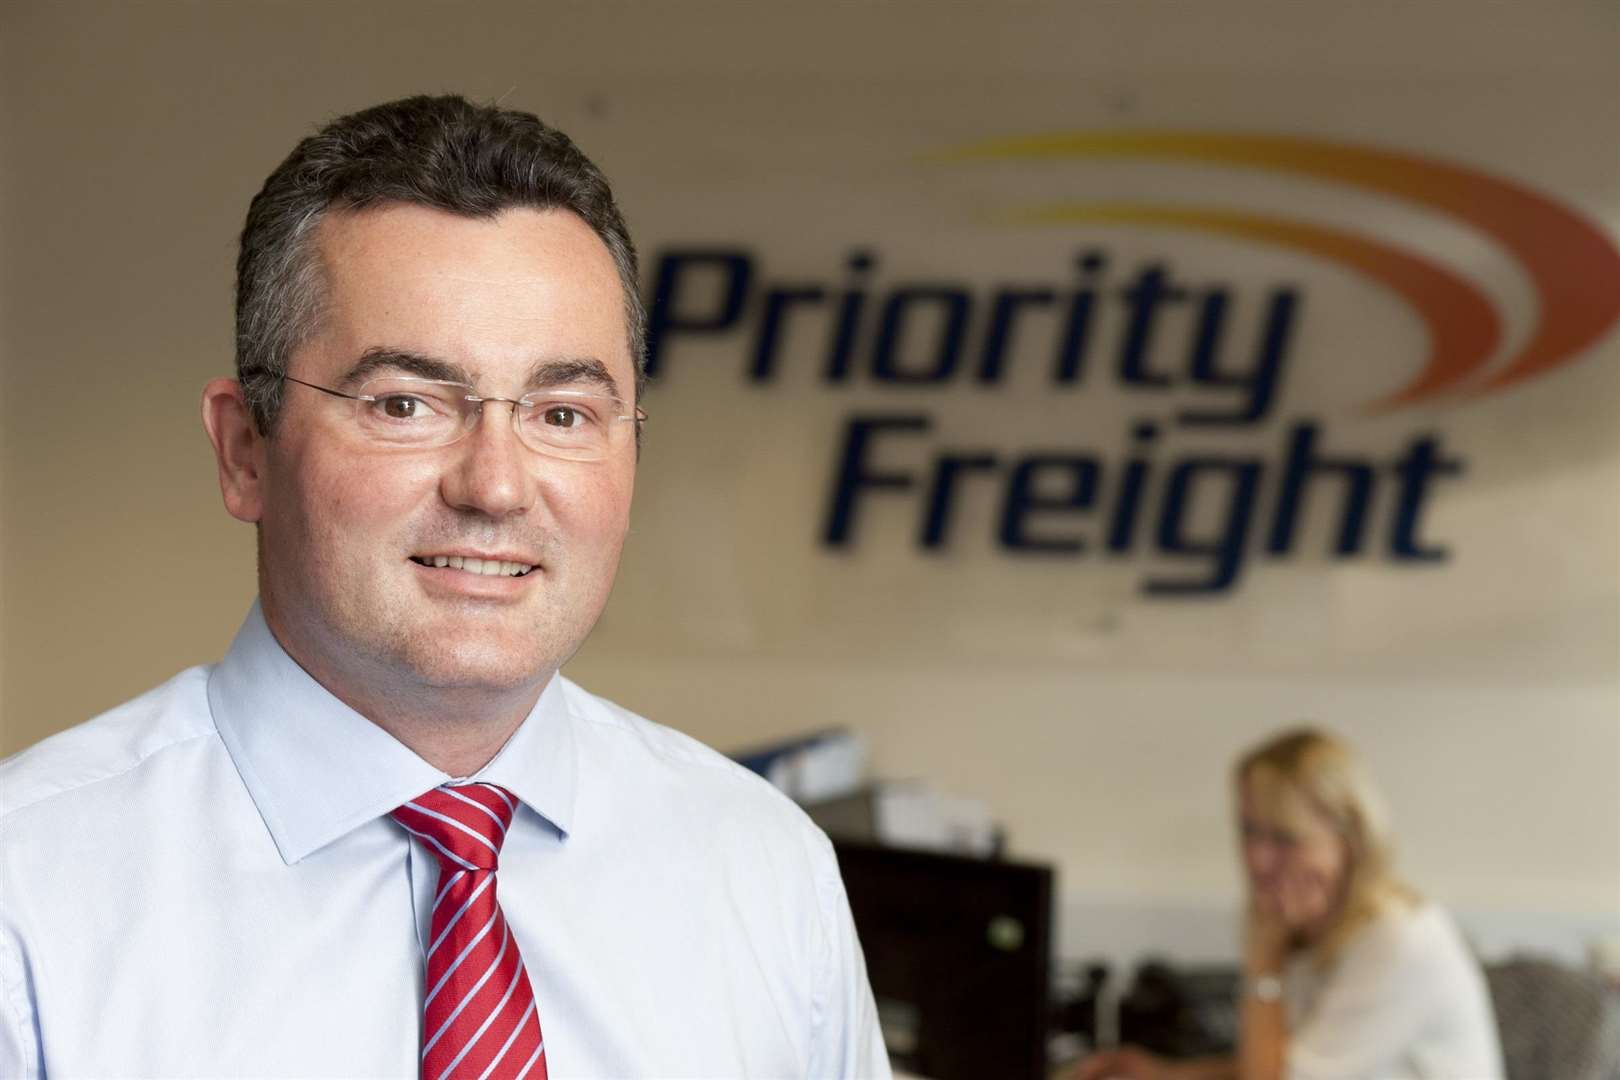 Priority Freight managing director Neal Williams